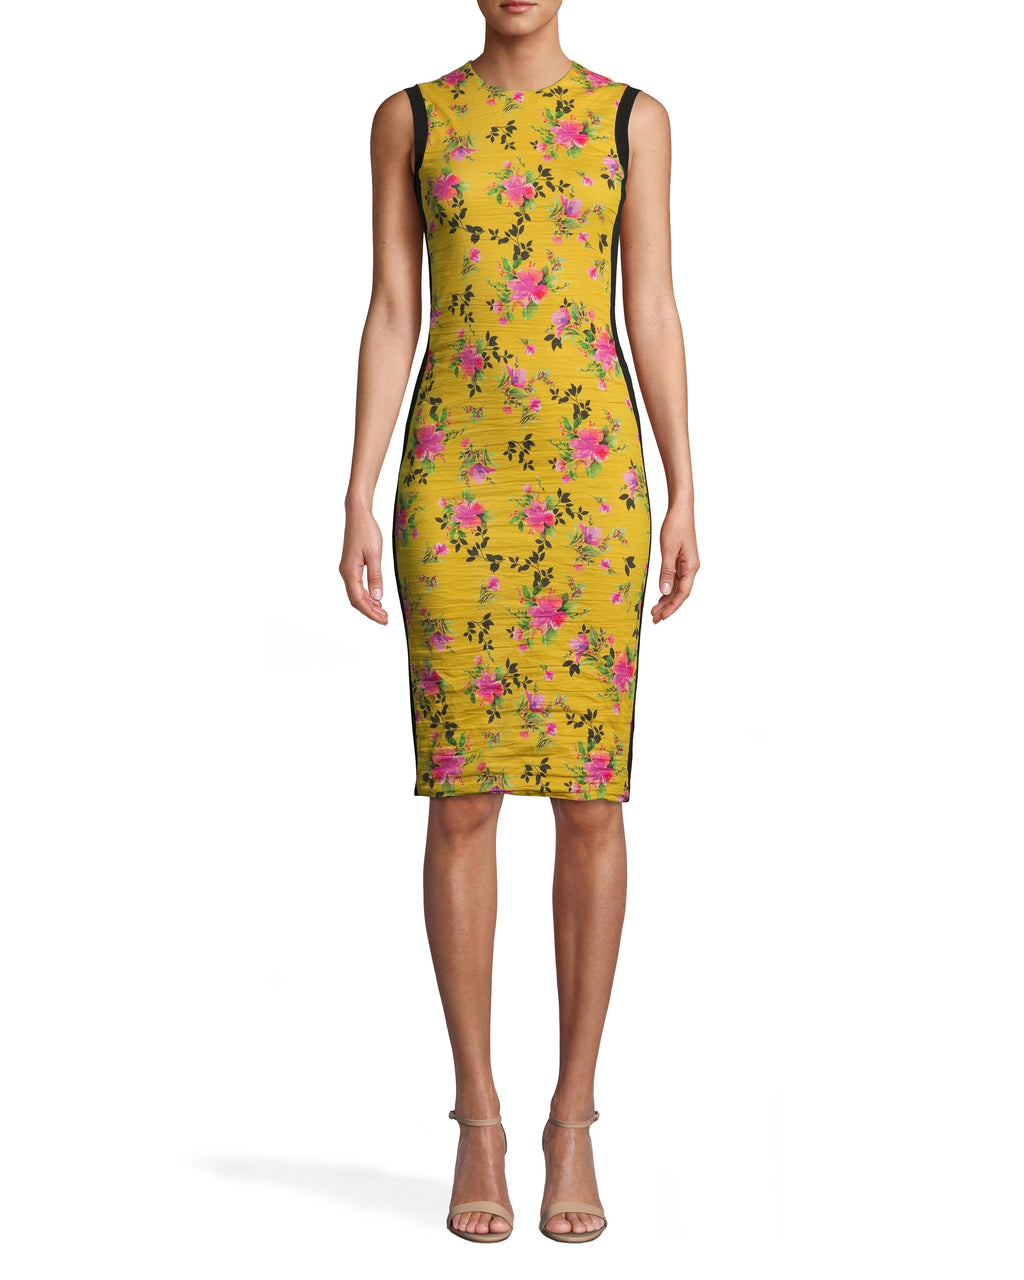 CC10205 - LOTUS LIFE COMBO SHEATH DRESS - dresses - short - OUR VIBRANT LOTUS LIFE PRINT ELEVATES THIS TIMELESS SILHOUETTE. THIS HIGH NECK PIECE HAS A KNEE LENGTH HEMLINE AND PONTE DETAILING ALONG THE SIDES. OUR SIGNATURE COTTON METAL SHOWCASES YOUR FIGURE. Add 1 line break STYLIST TIP: WEAR WITH SIMPLE SHOES A ND GOLD HOOPS.